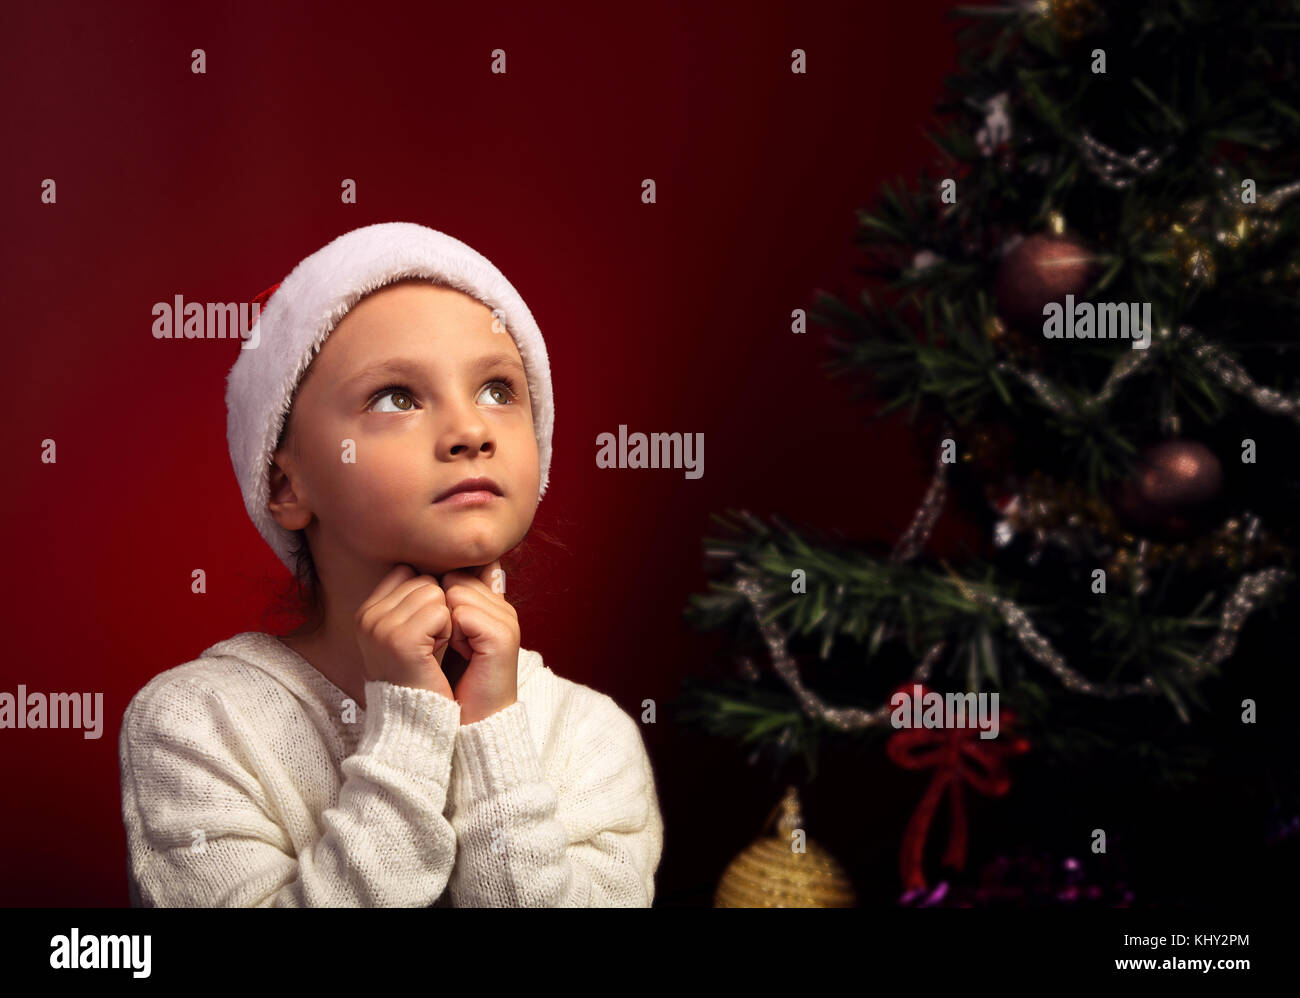 6df9558cf77f9 Cute happy smiling girl in fur santa claus hat near the Christmas holiday  tree asking